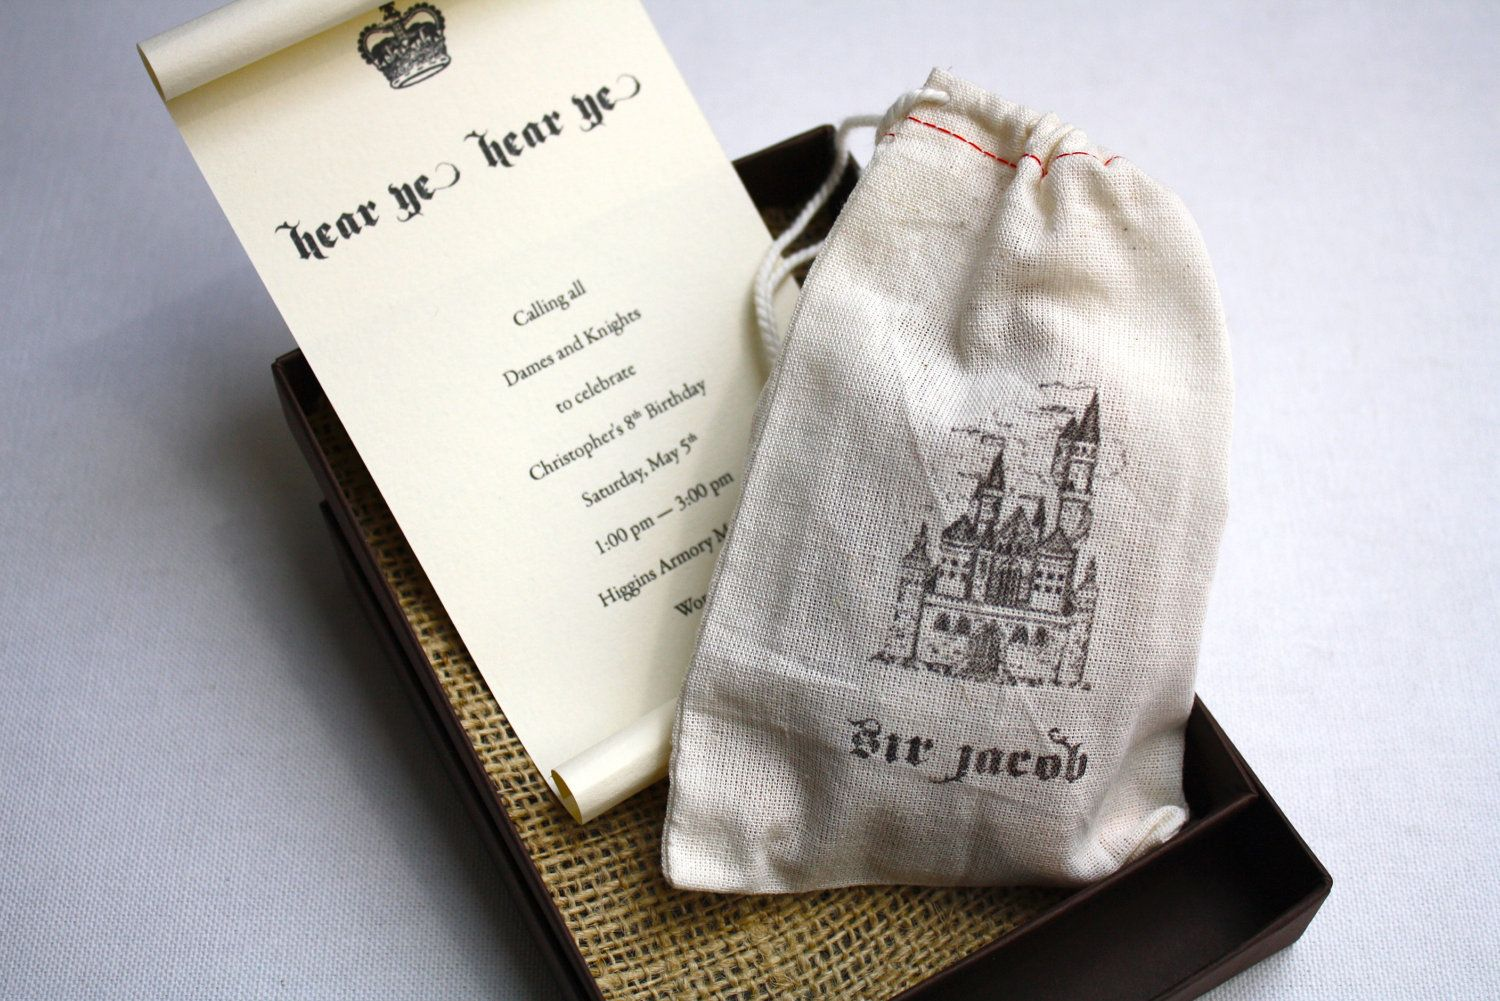 Medieval castle and knight birthday party invitation box mailer medieval castle and knight birthday party invitation box mailer scroll invitation personalized muslin filmwisefo Images